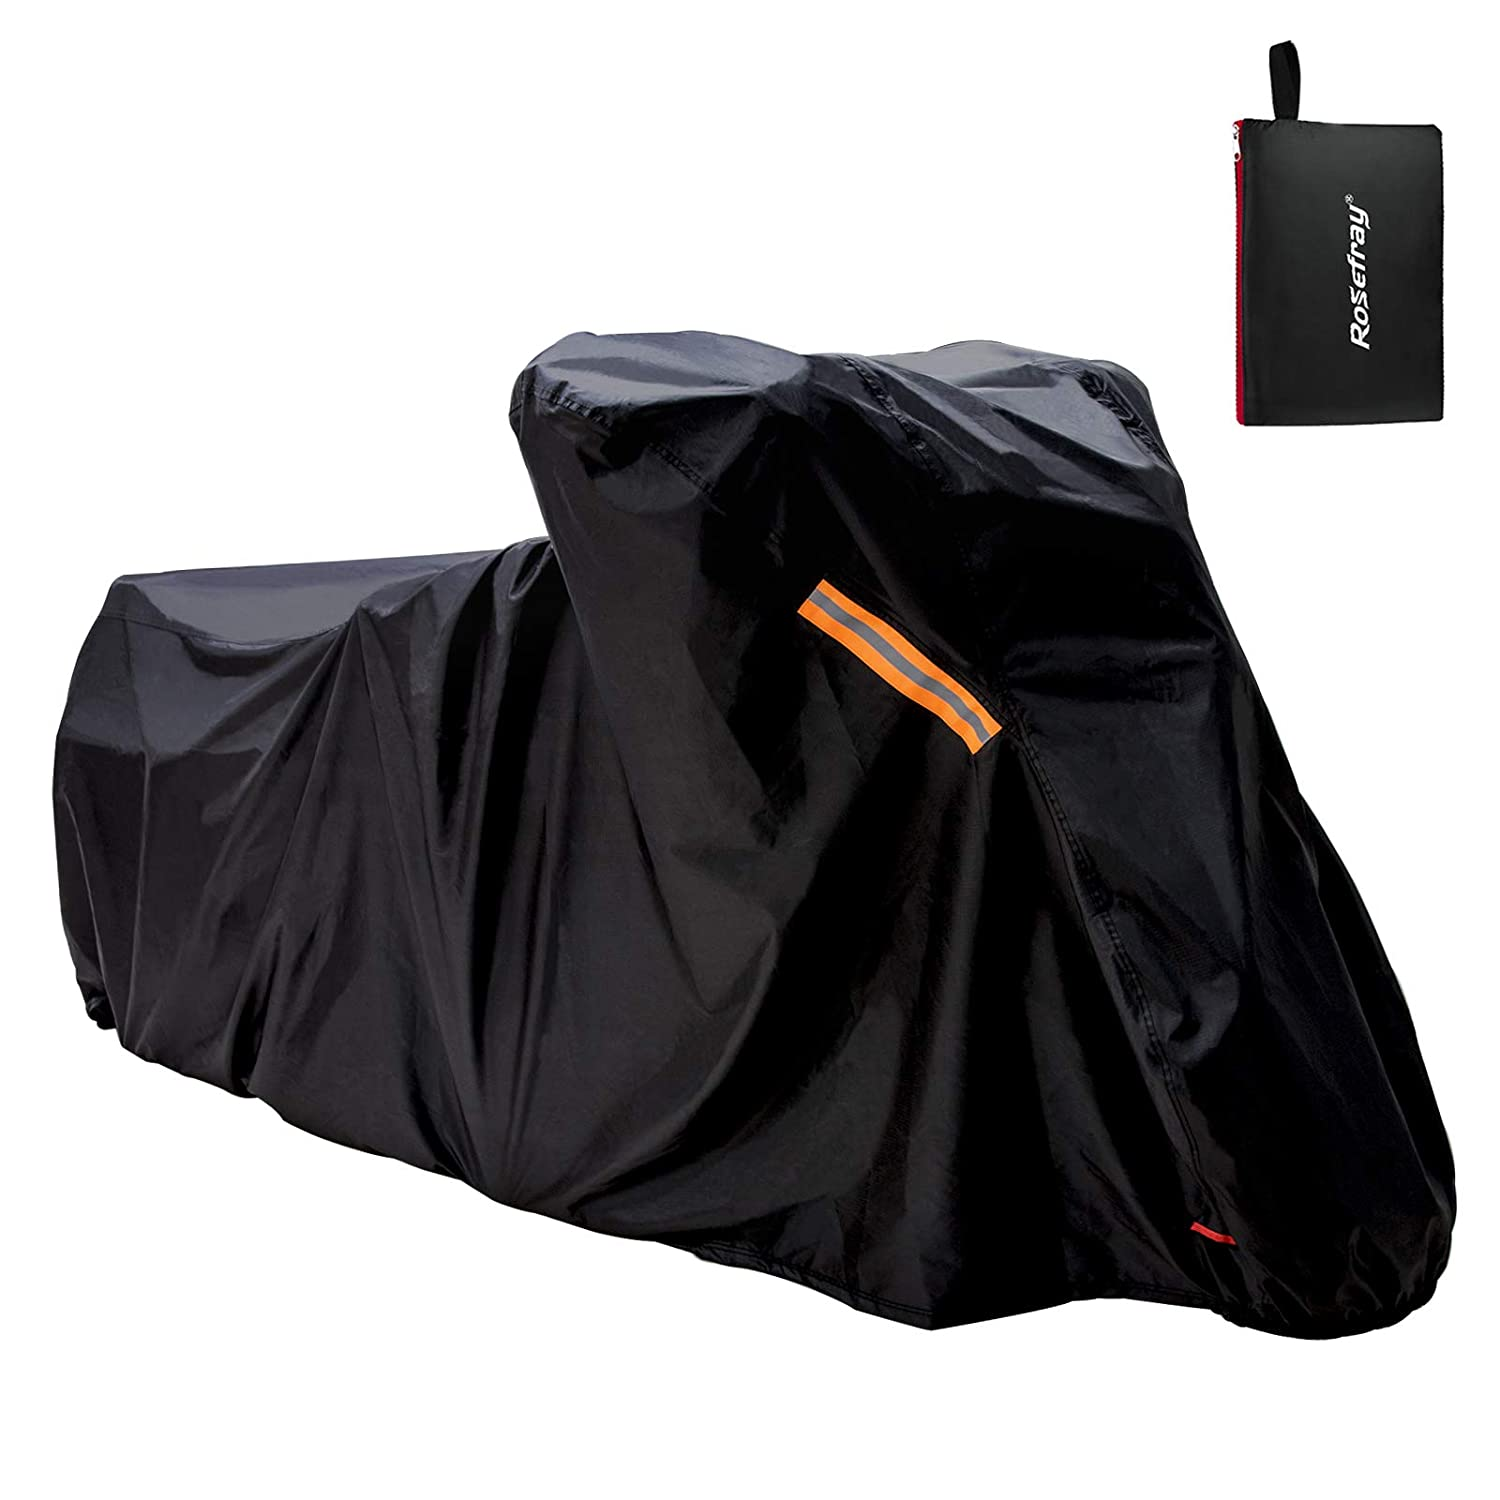 XXL,Black Sport Bike Protect Against Dust Debris Motorcycle Jacket Cruiser Touring Rosefray Motorcycle Cover ,Precision Fit up to 104 Inch Motorcycle Rain and Weather